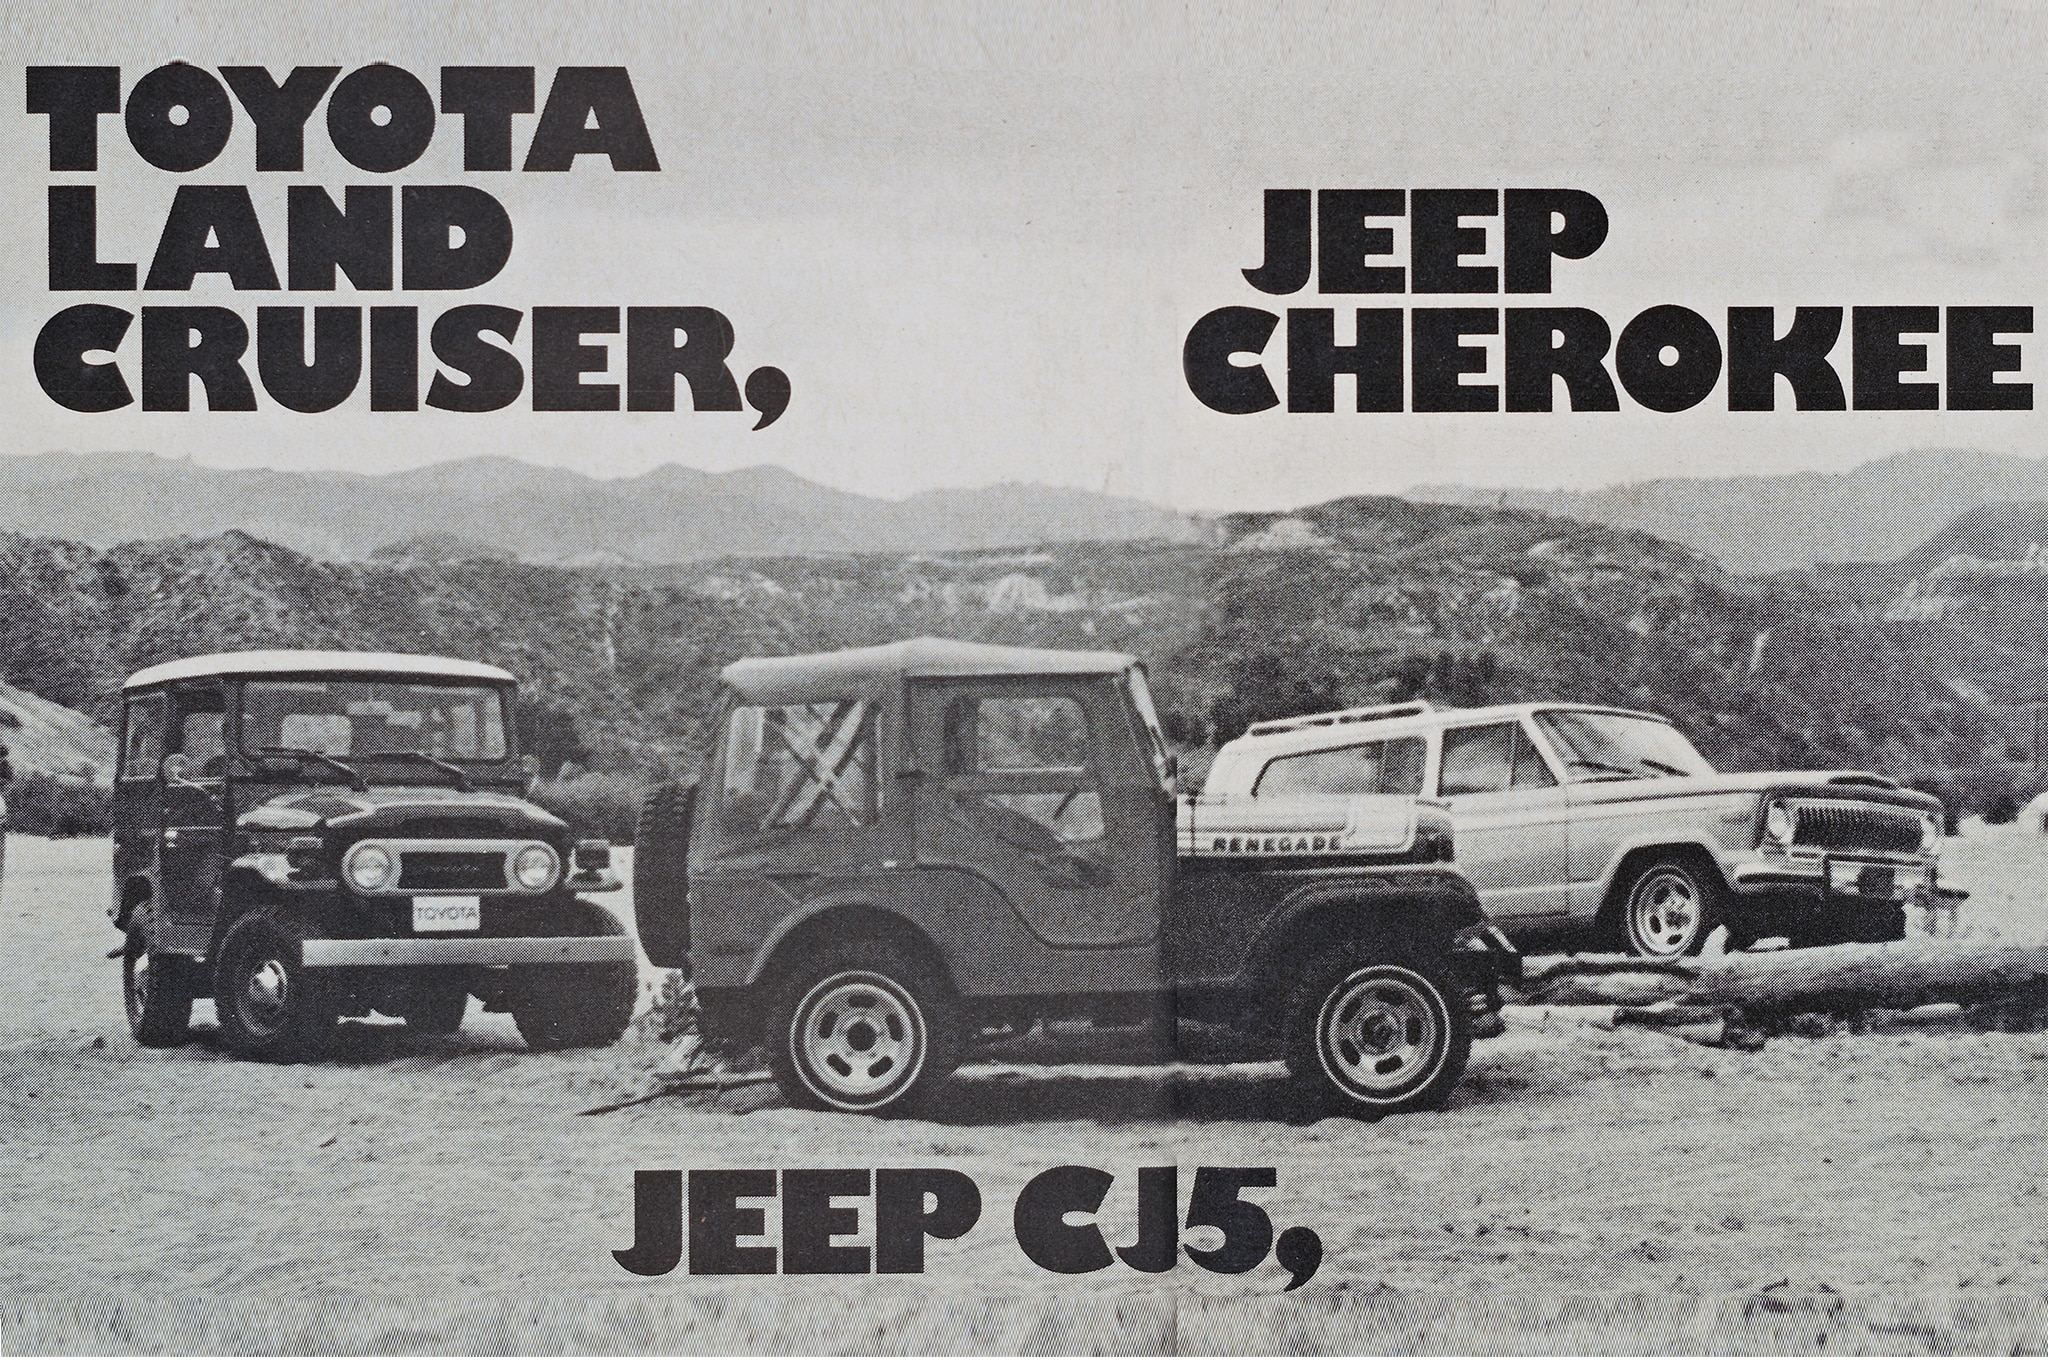 Jeep Cherokee Vs Toyota Land Cruiser Vs Jeep CJ5